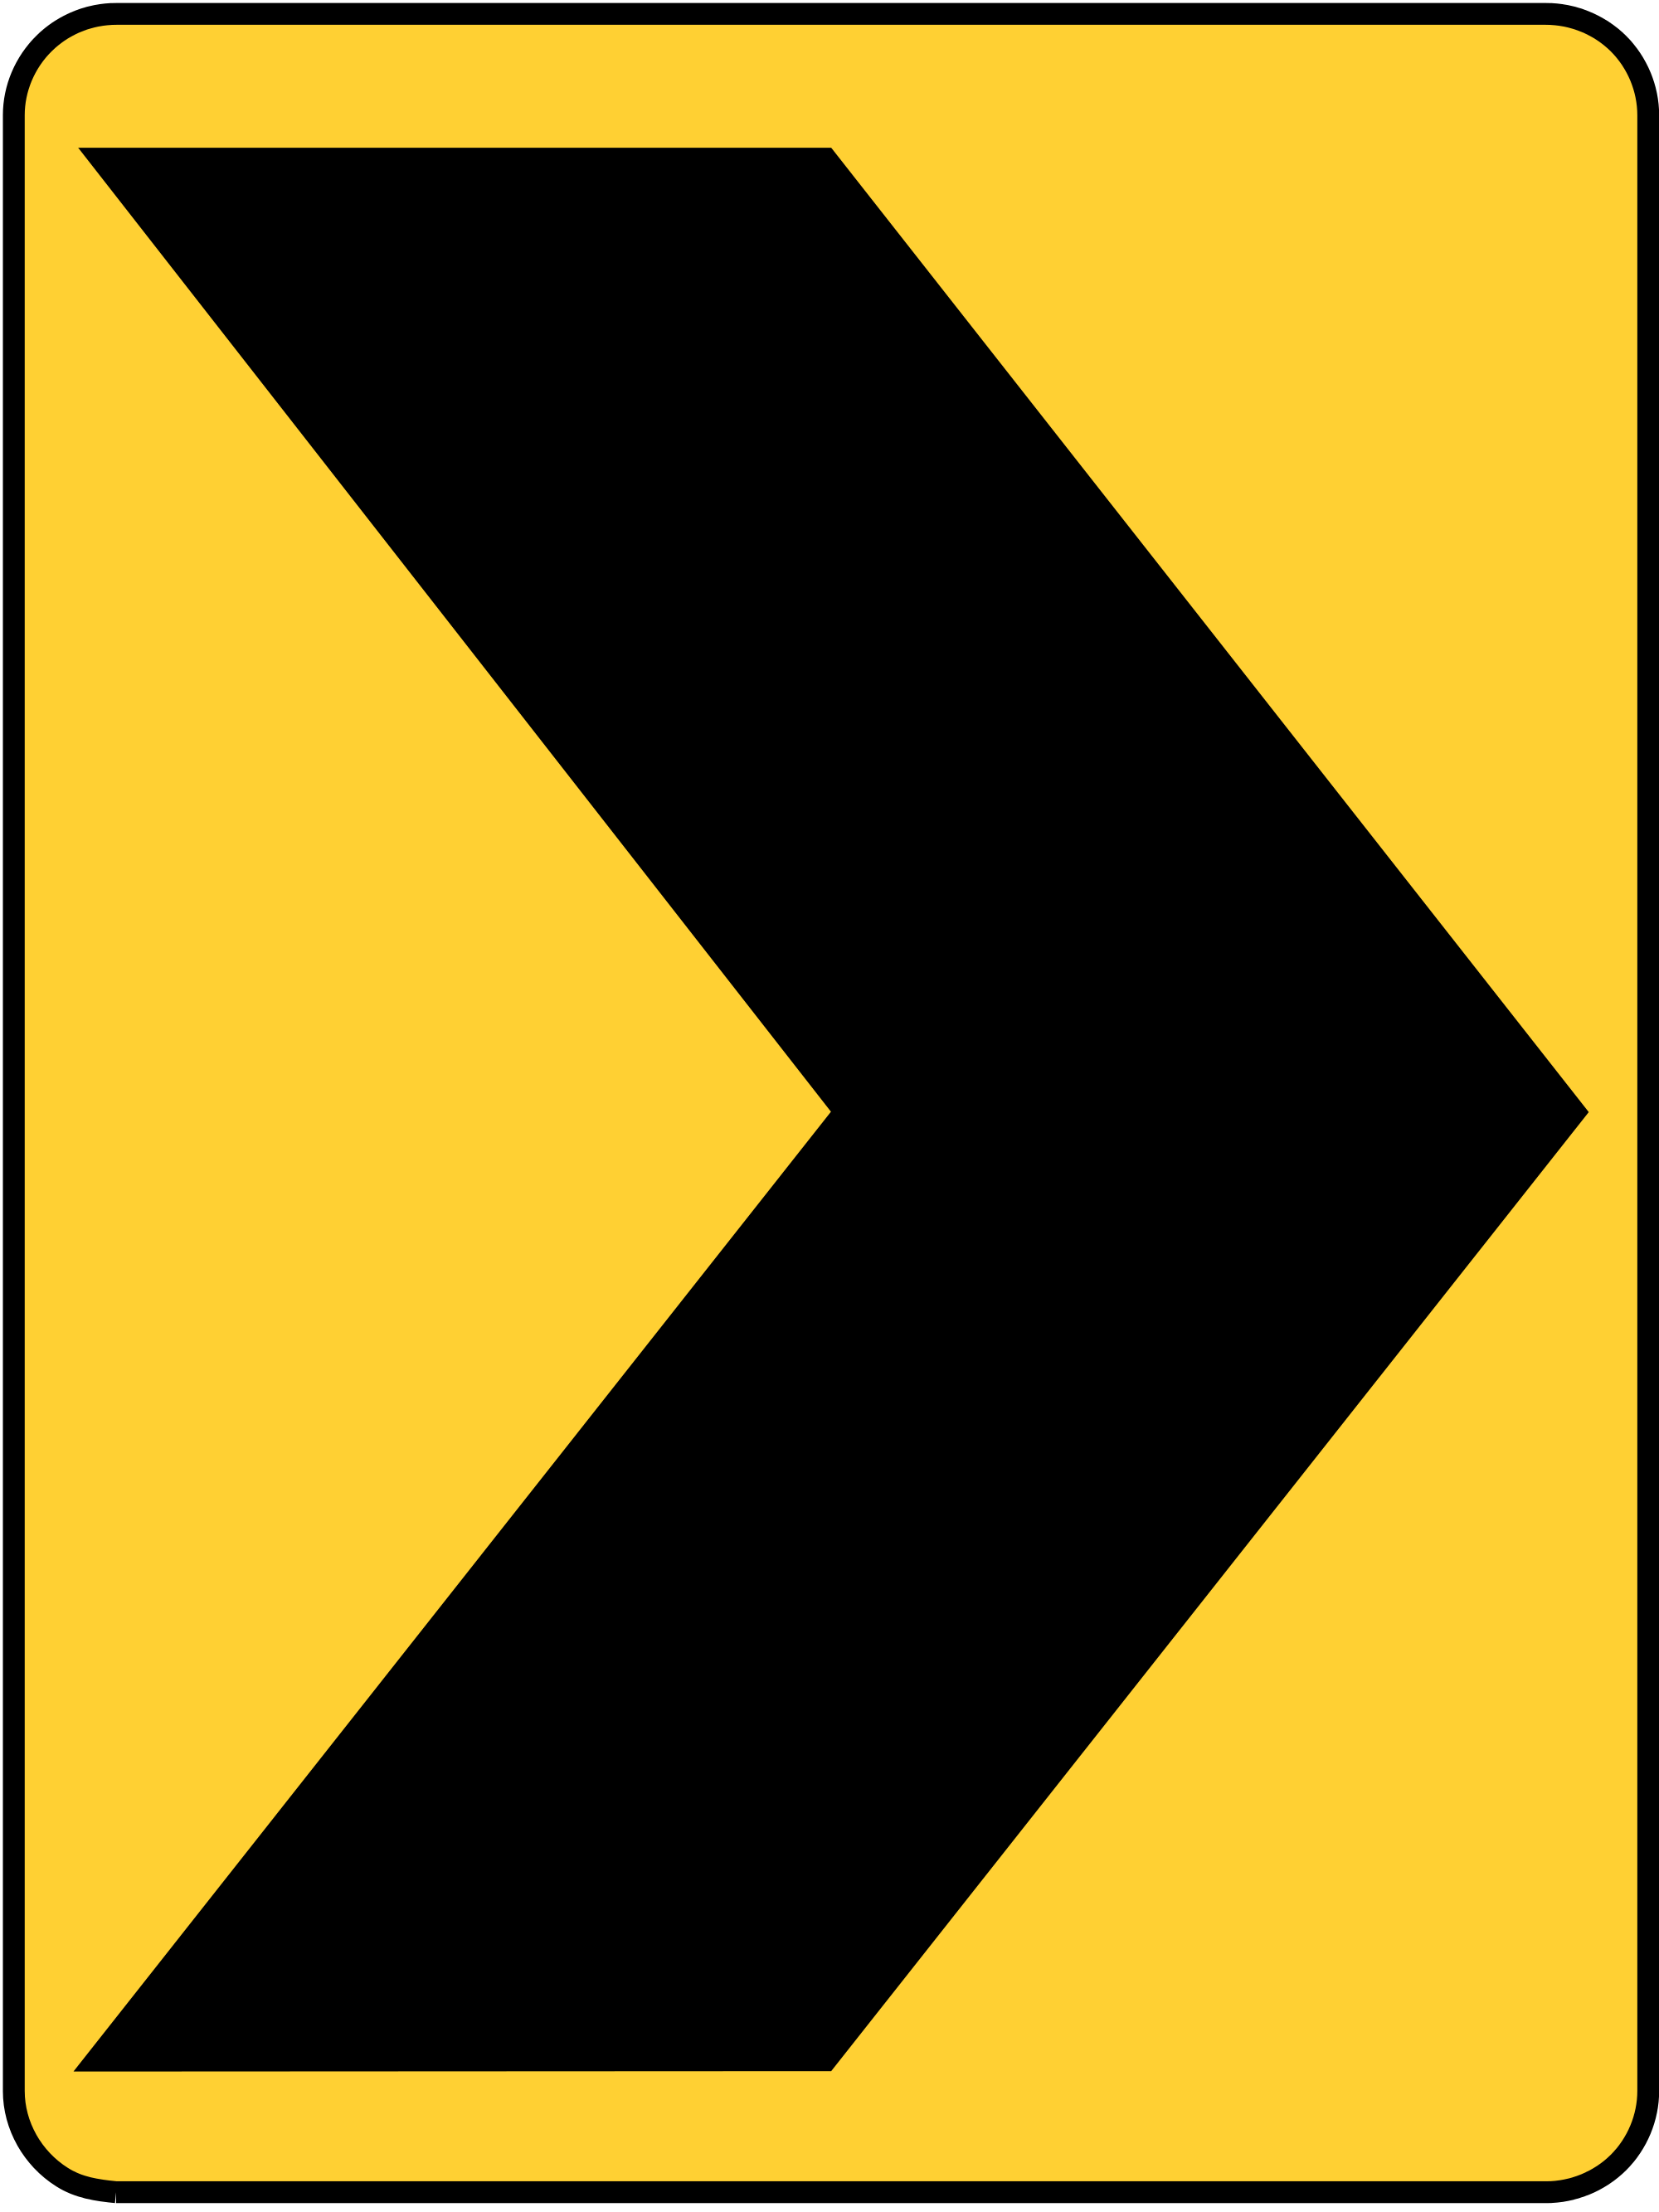 W1-8R CHEVRON ALIGNMENT